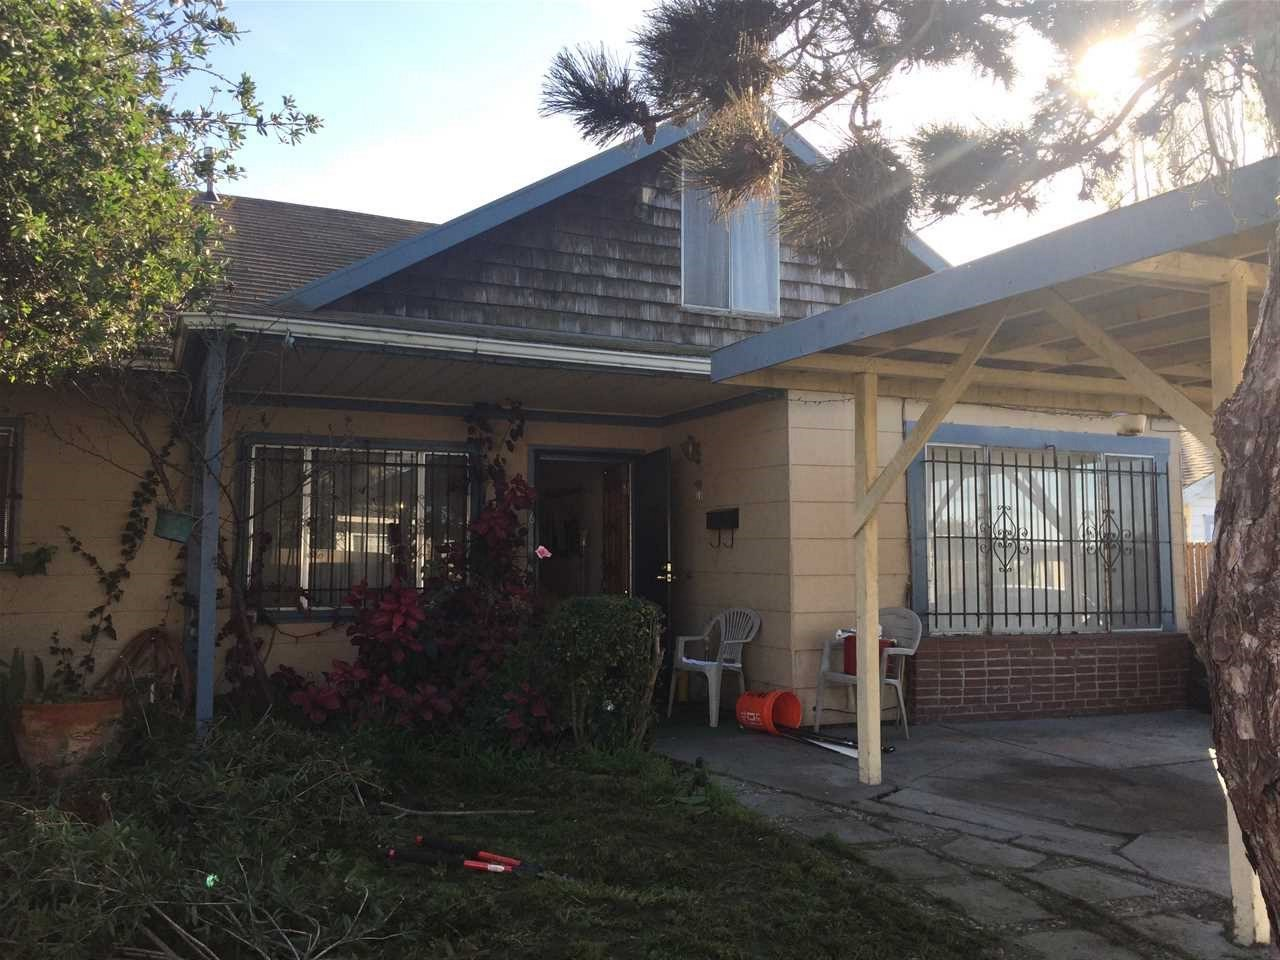 516 BANKS DRIVE, RICHMOND, CA 94806